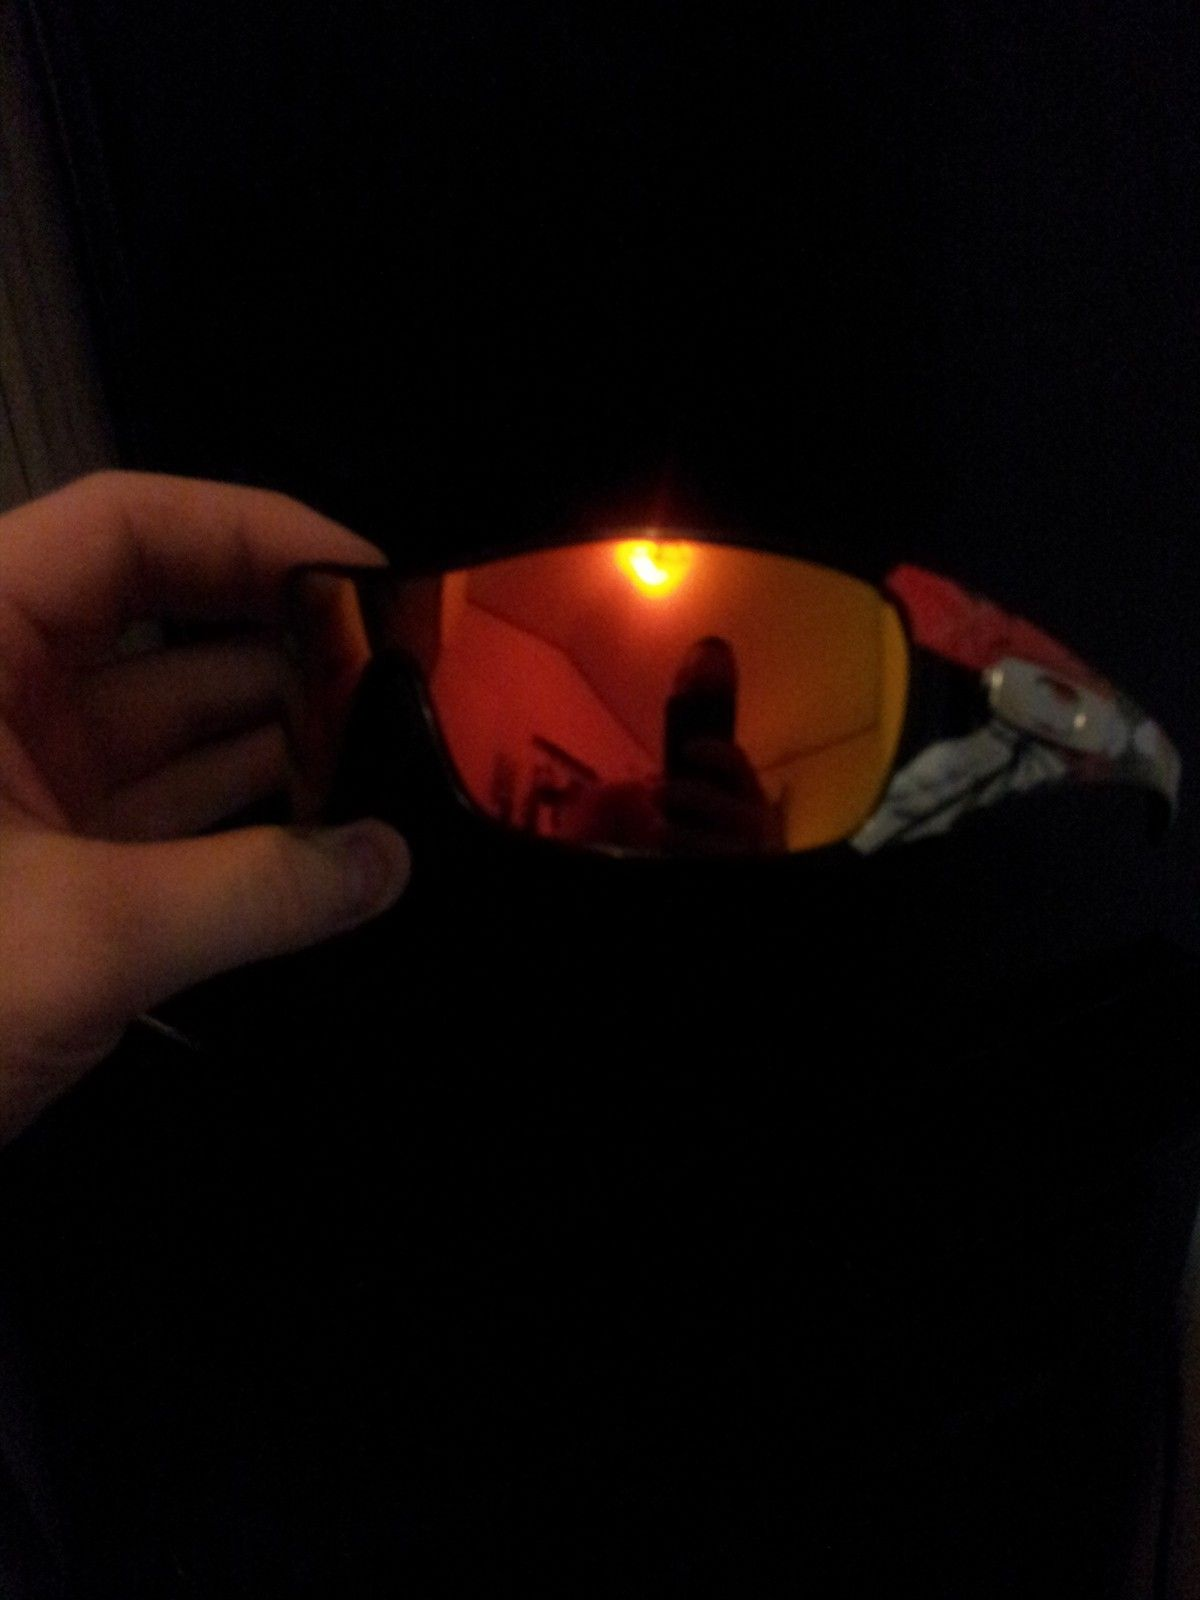 Ending 2012 With A Bang, Oakley Style: Whiskey MD / Fonseca Antix - 8337610637_63b4def2f1_h.jpg